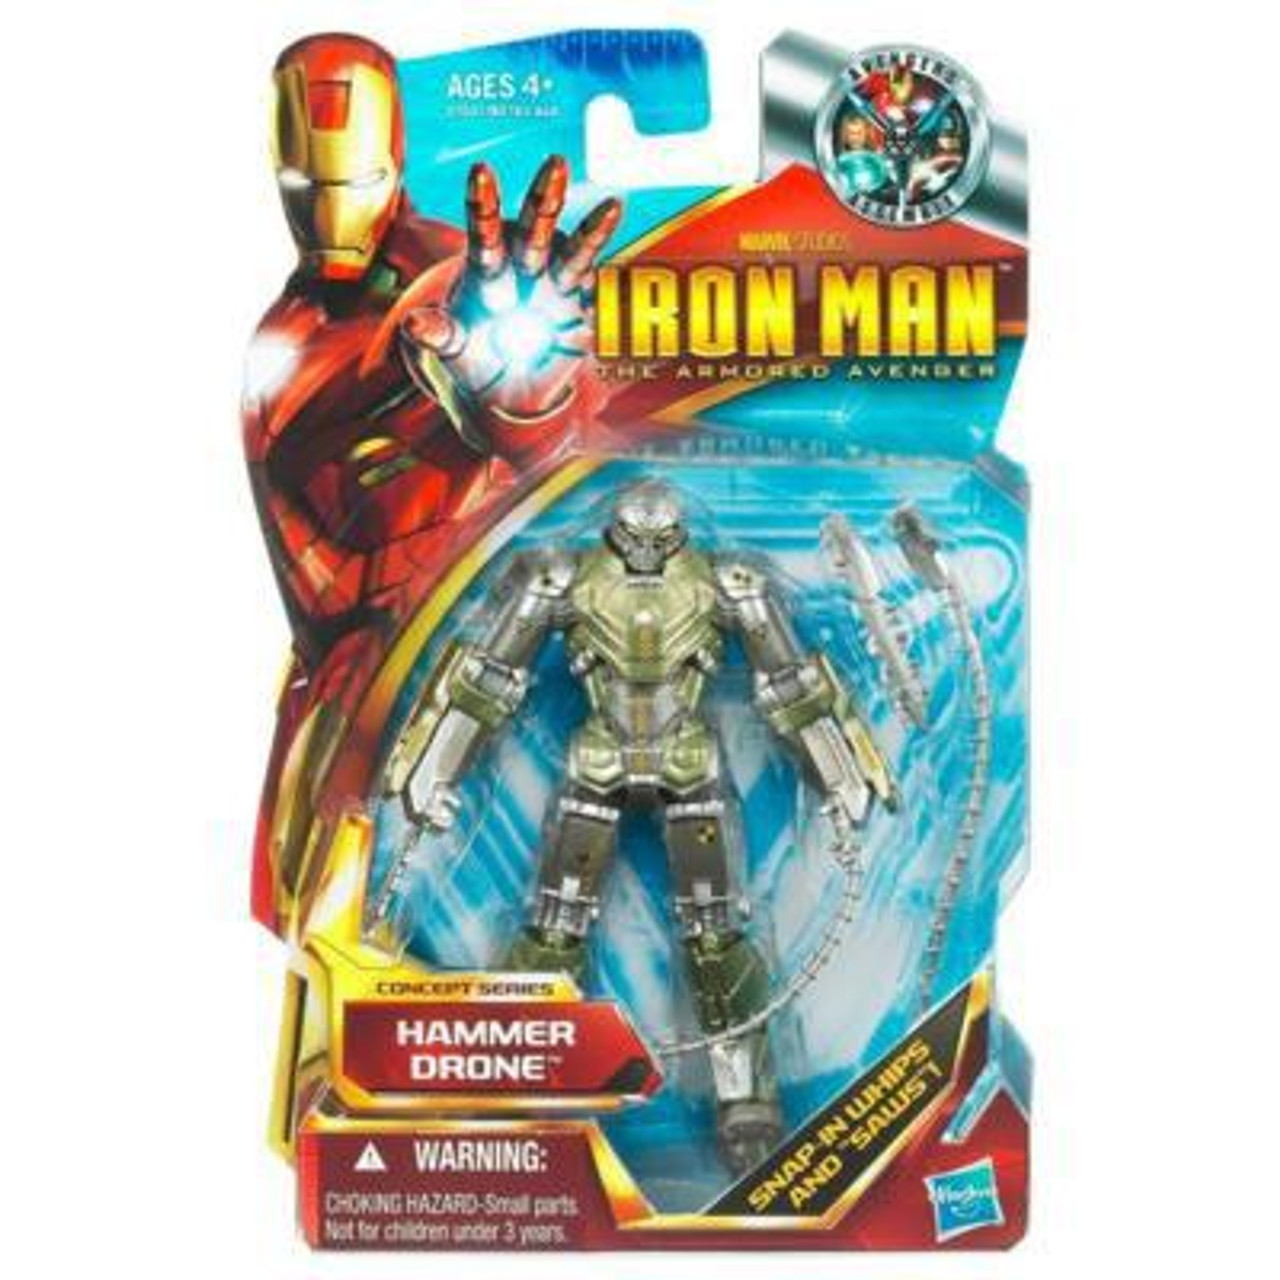 Iron Man The Armored Avenger Movie Series Hammer Drone Action Figure #44